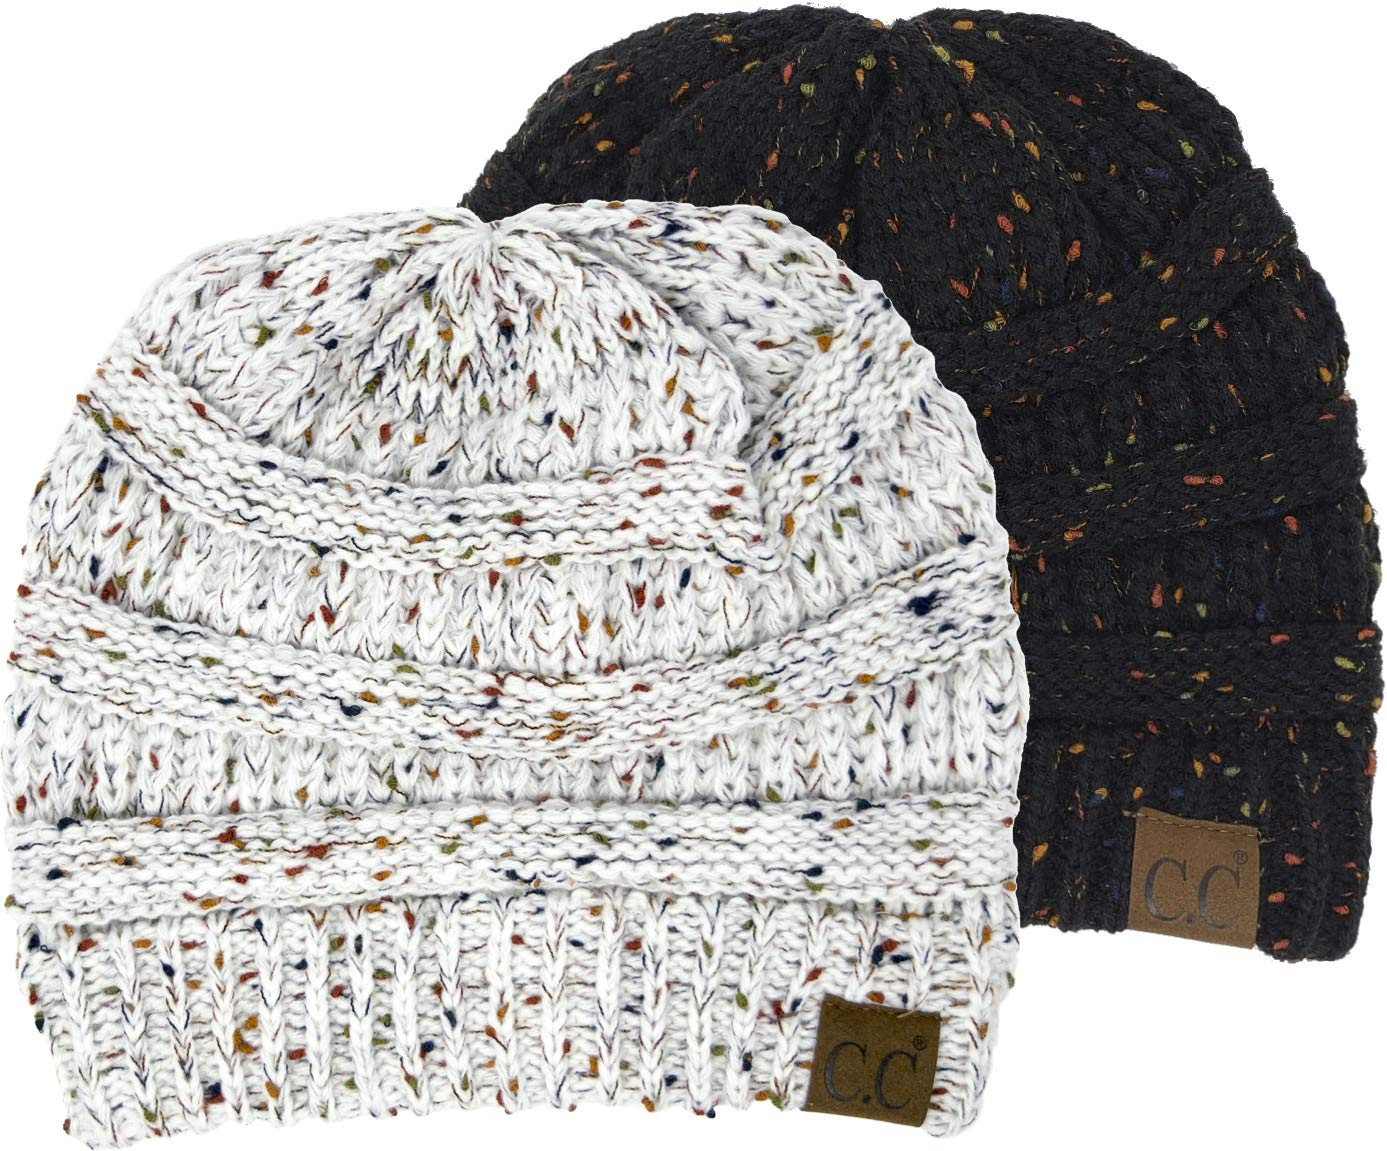 H-6033-2-0625 Confetti Knit Beanie Bundle - 1 Black, 1 Ivory (2 Pack) by Funky Junque